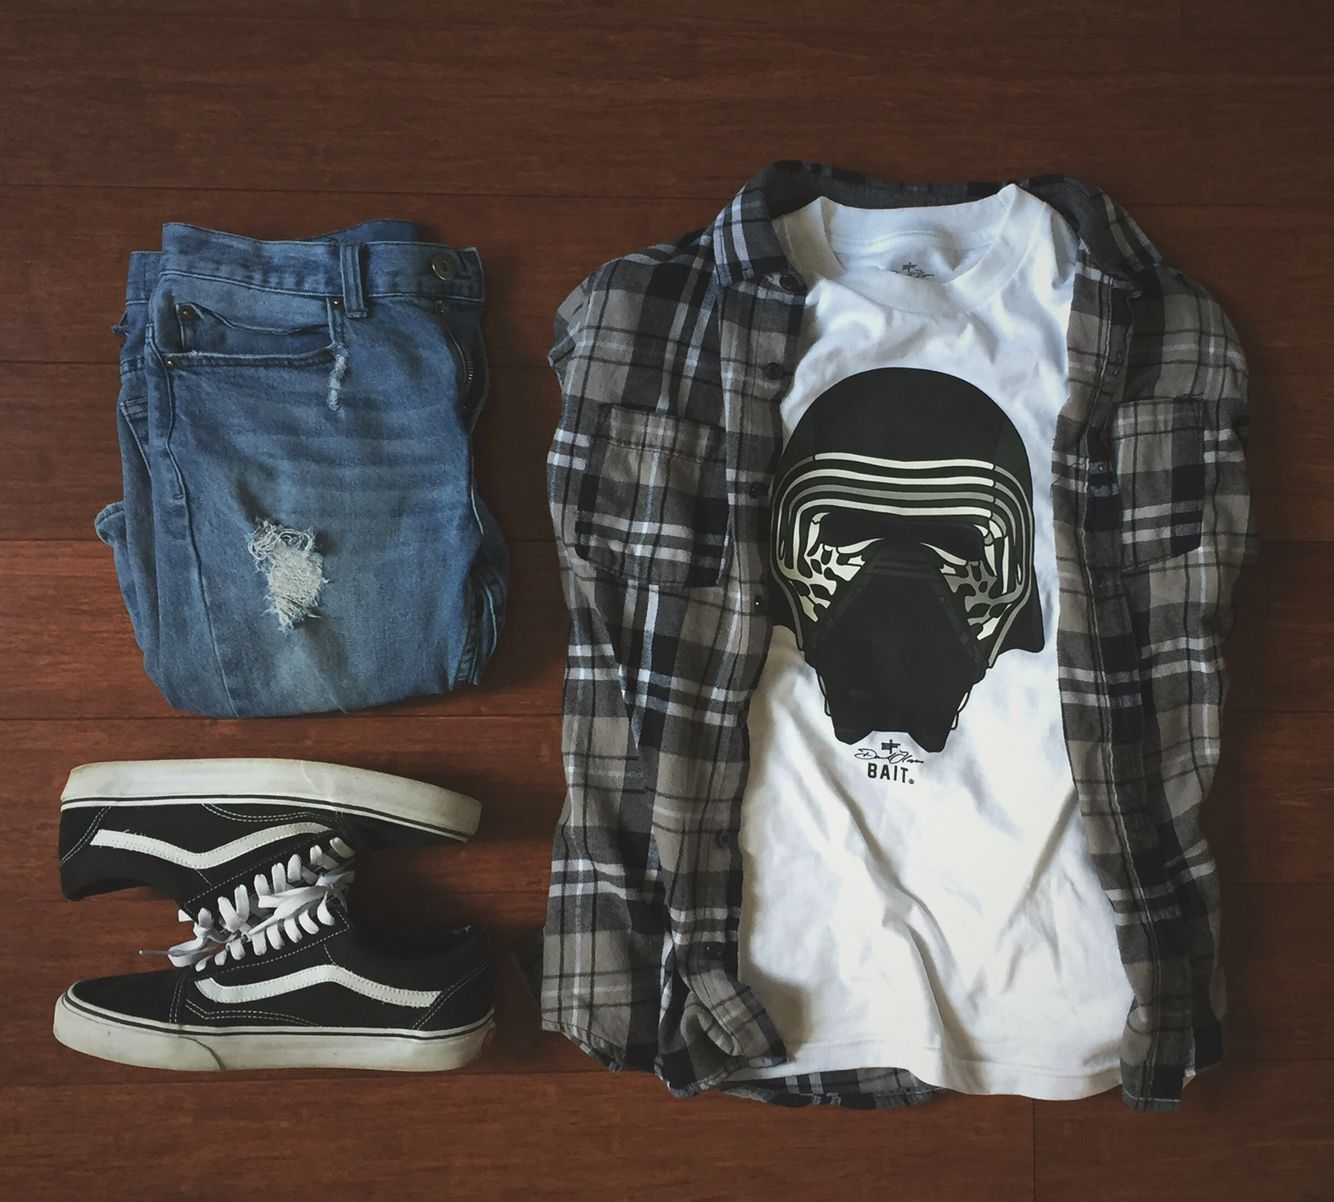 Flannel Quicksilver Shirt BAIT x Star Wars u0026quot;Kylou0026quot; Shoes Vans u0026quot;Old Skoolu0026quot; Pants Bullhead ...